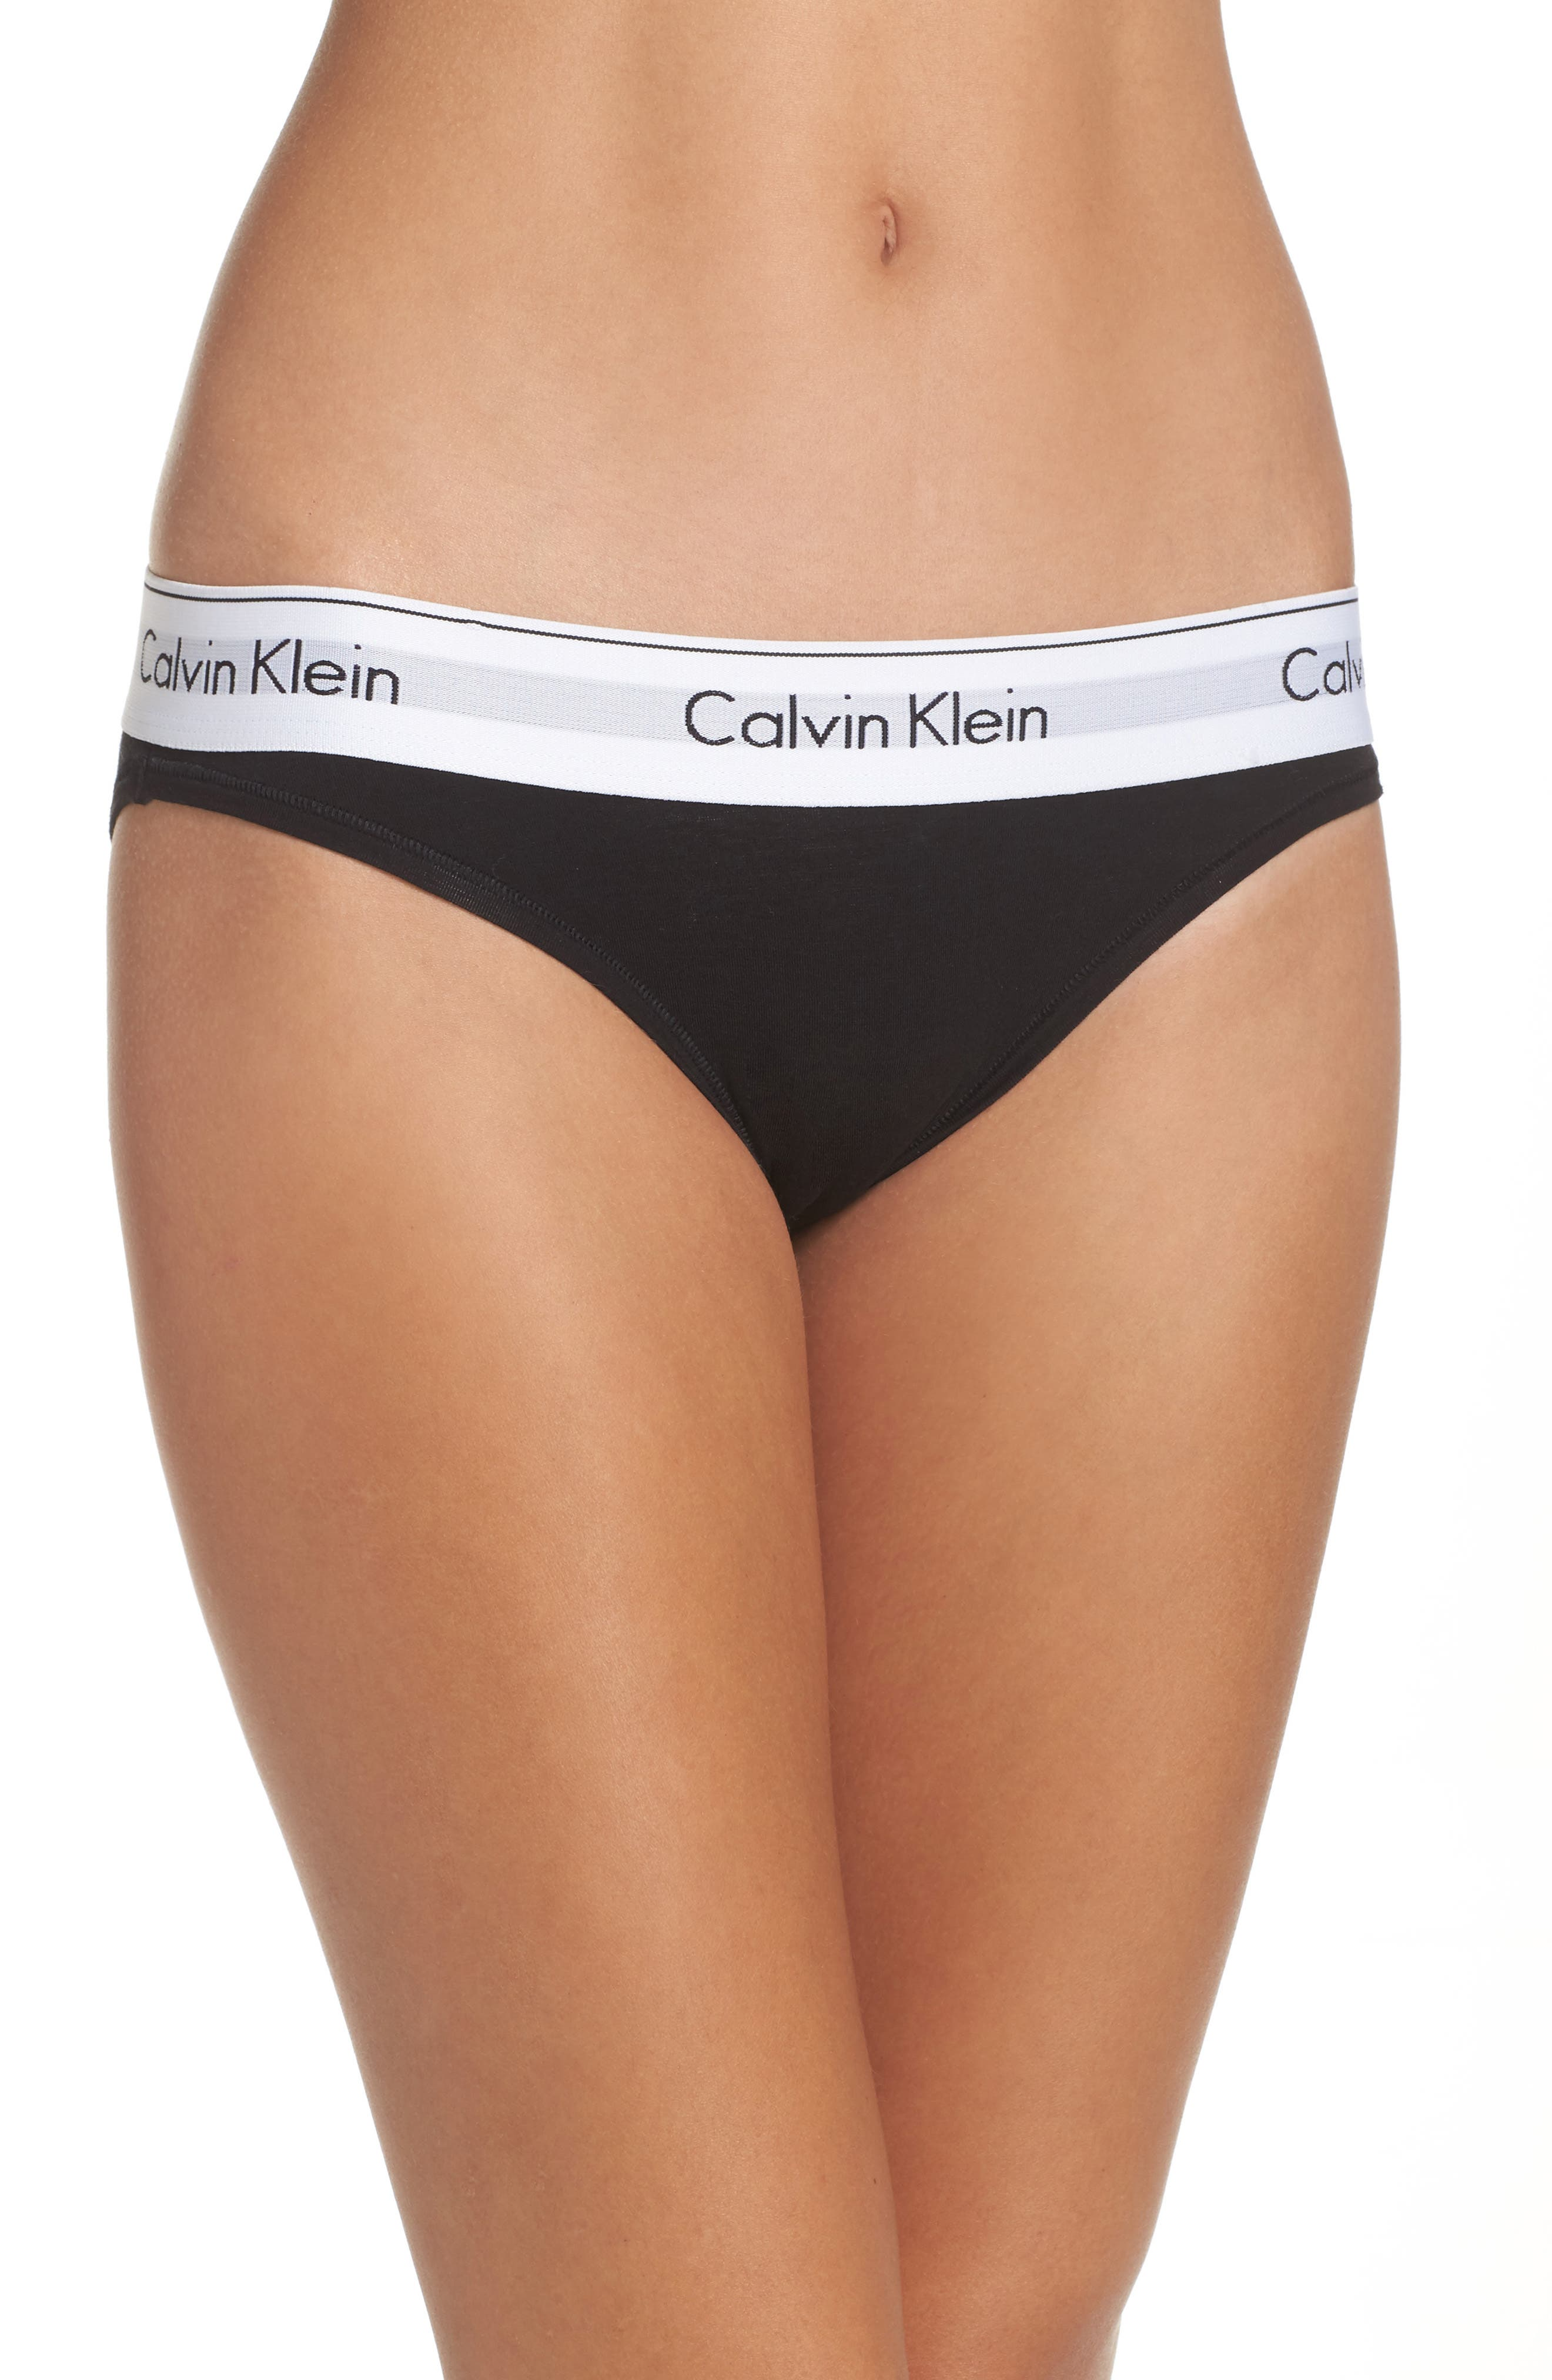 'Modern Cotton Collection' Cotton Blend Bikini,                             Alternate thumbnail 2, color,                             001